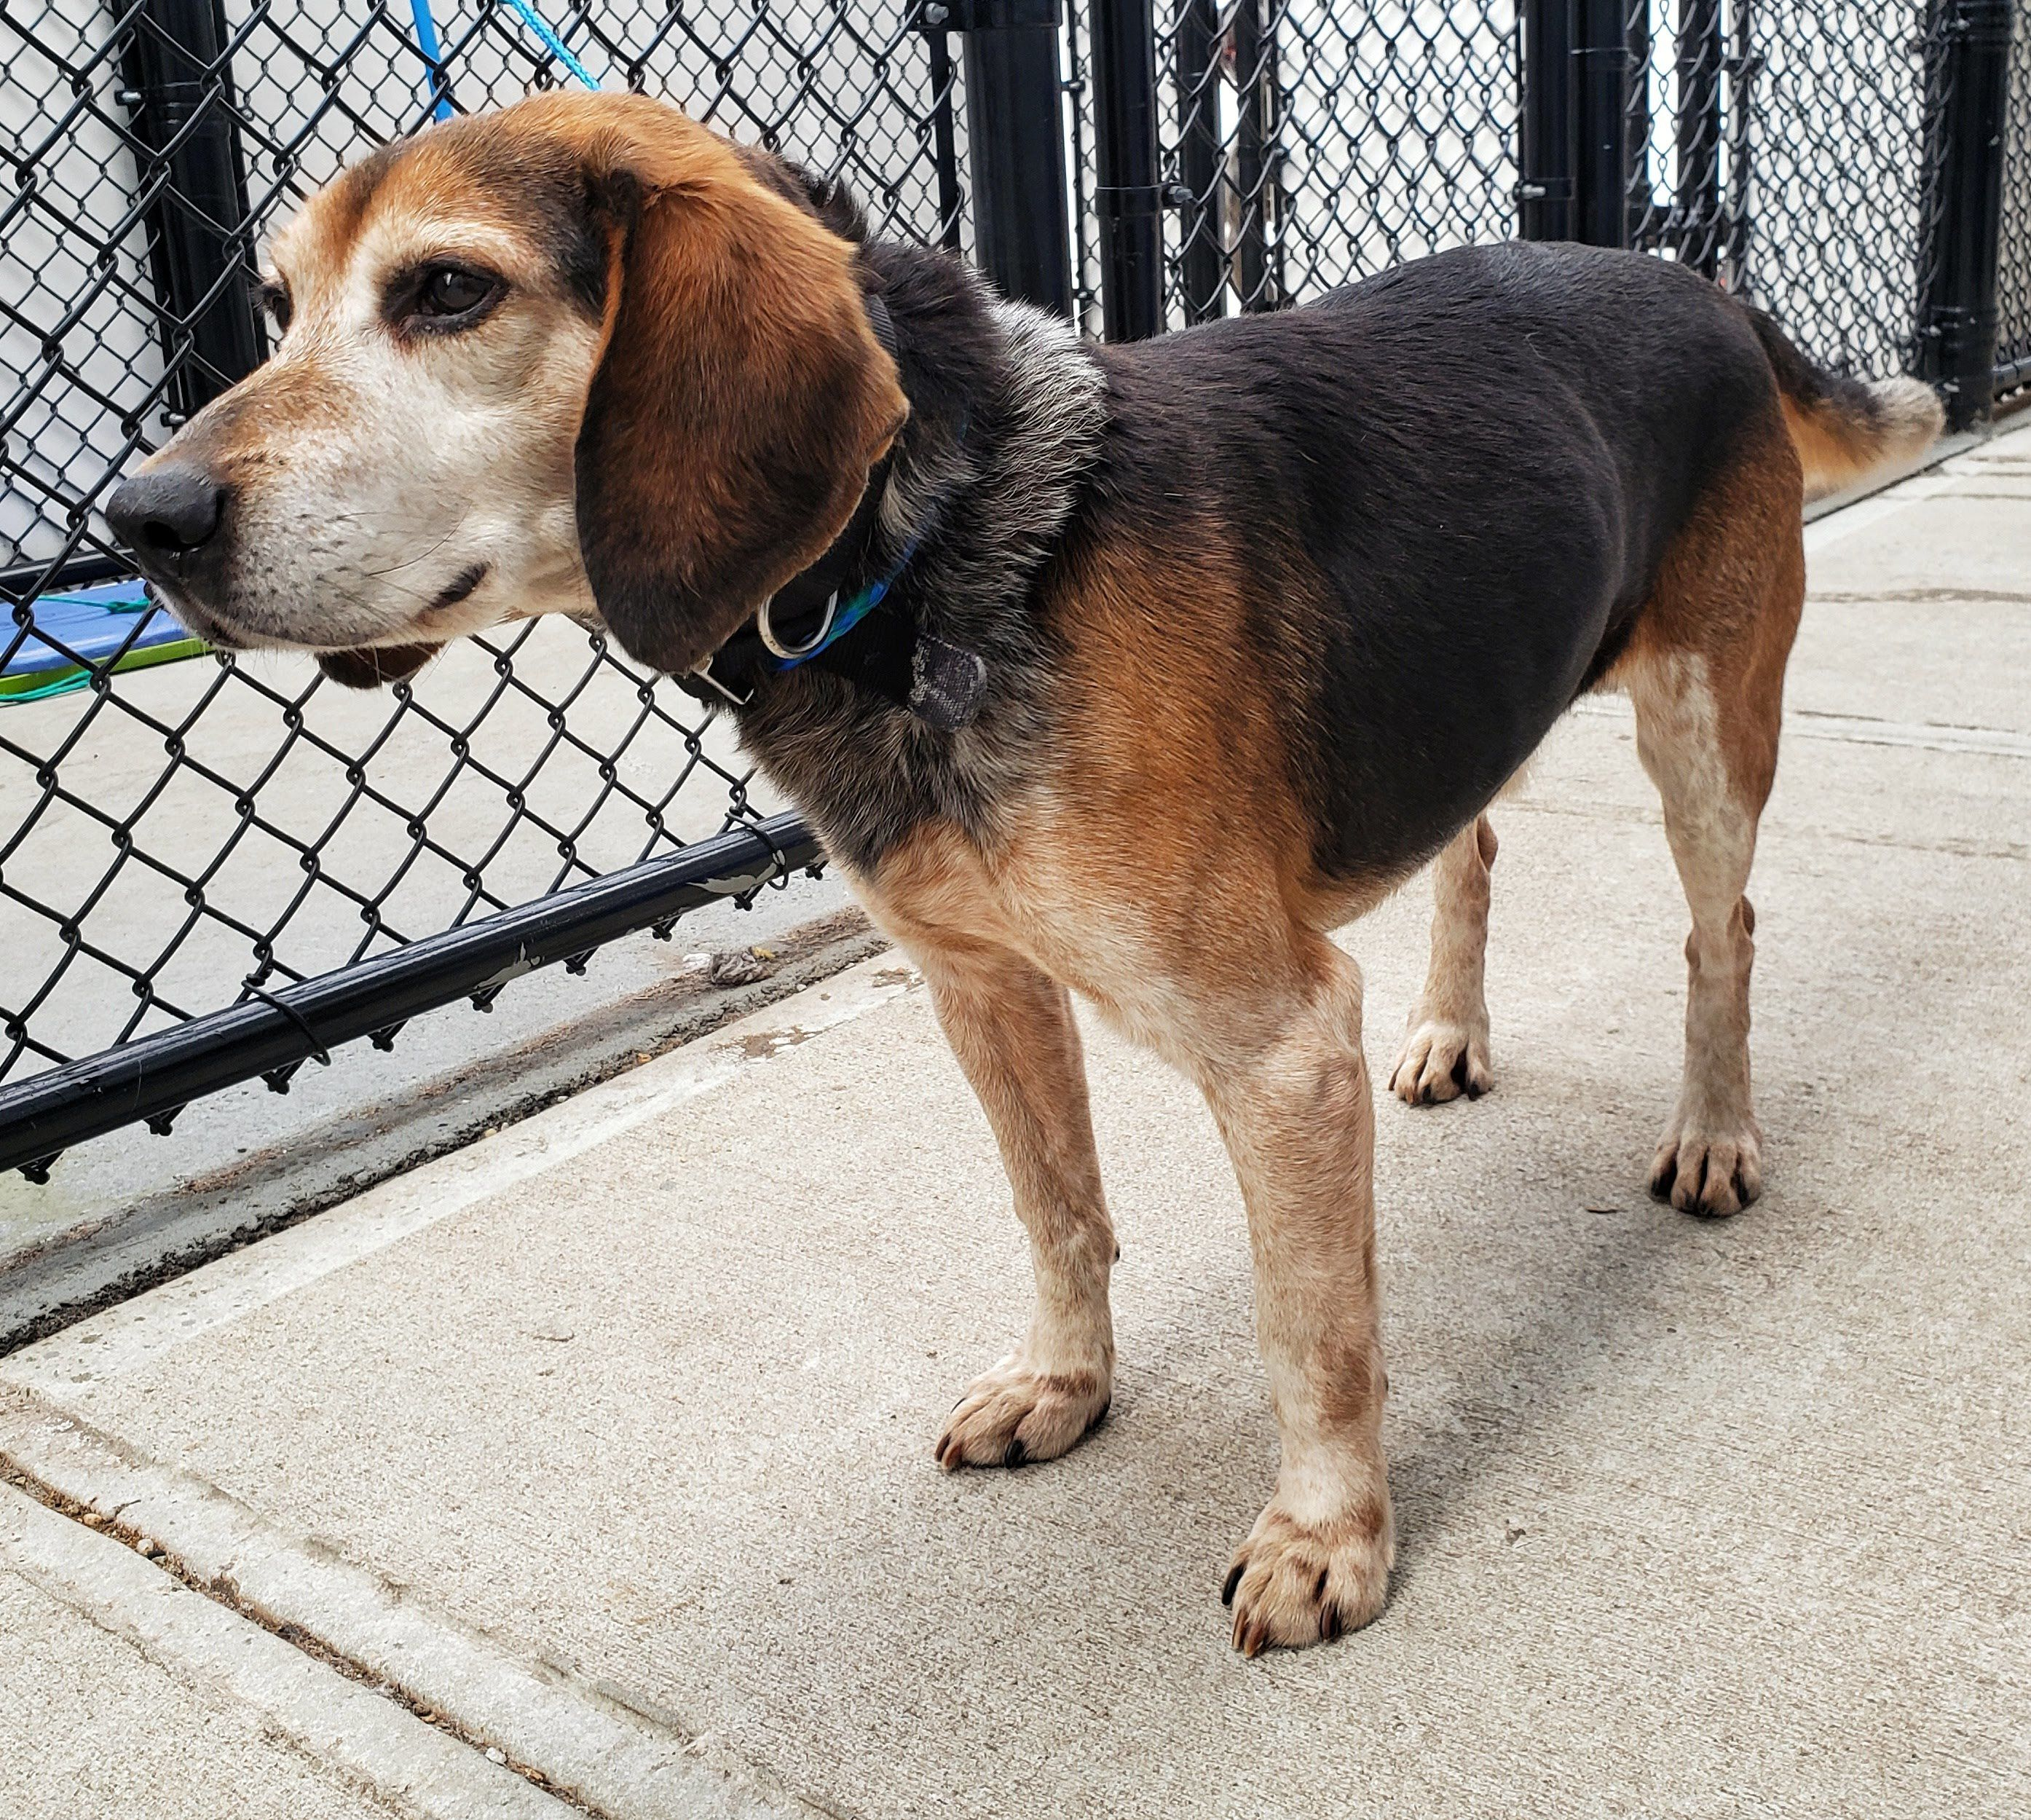 19 27 Is An Adoptable Beagle Searching For A Forever Family Near